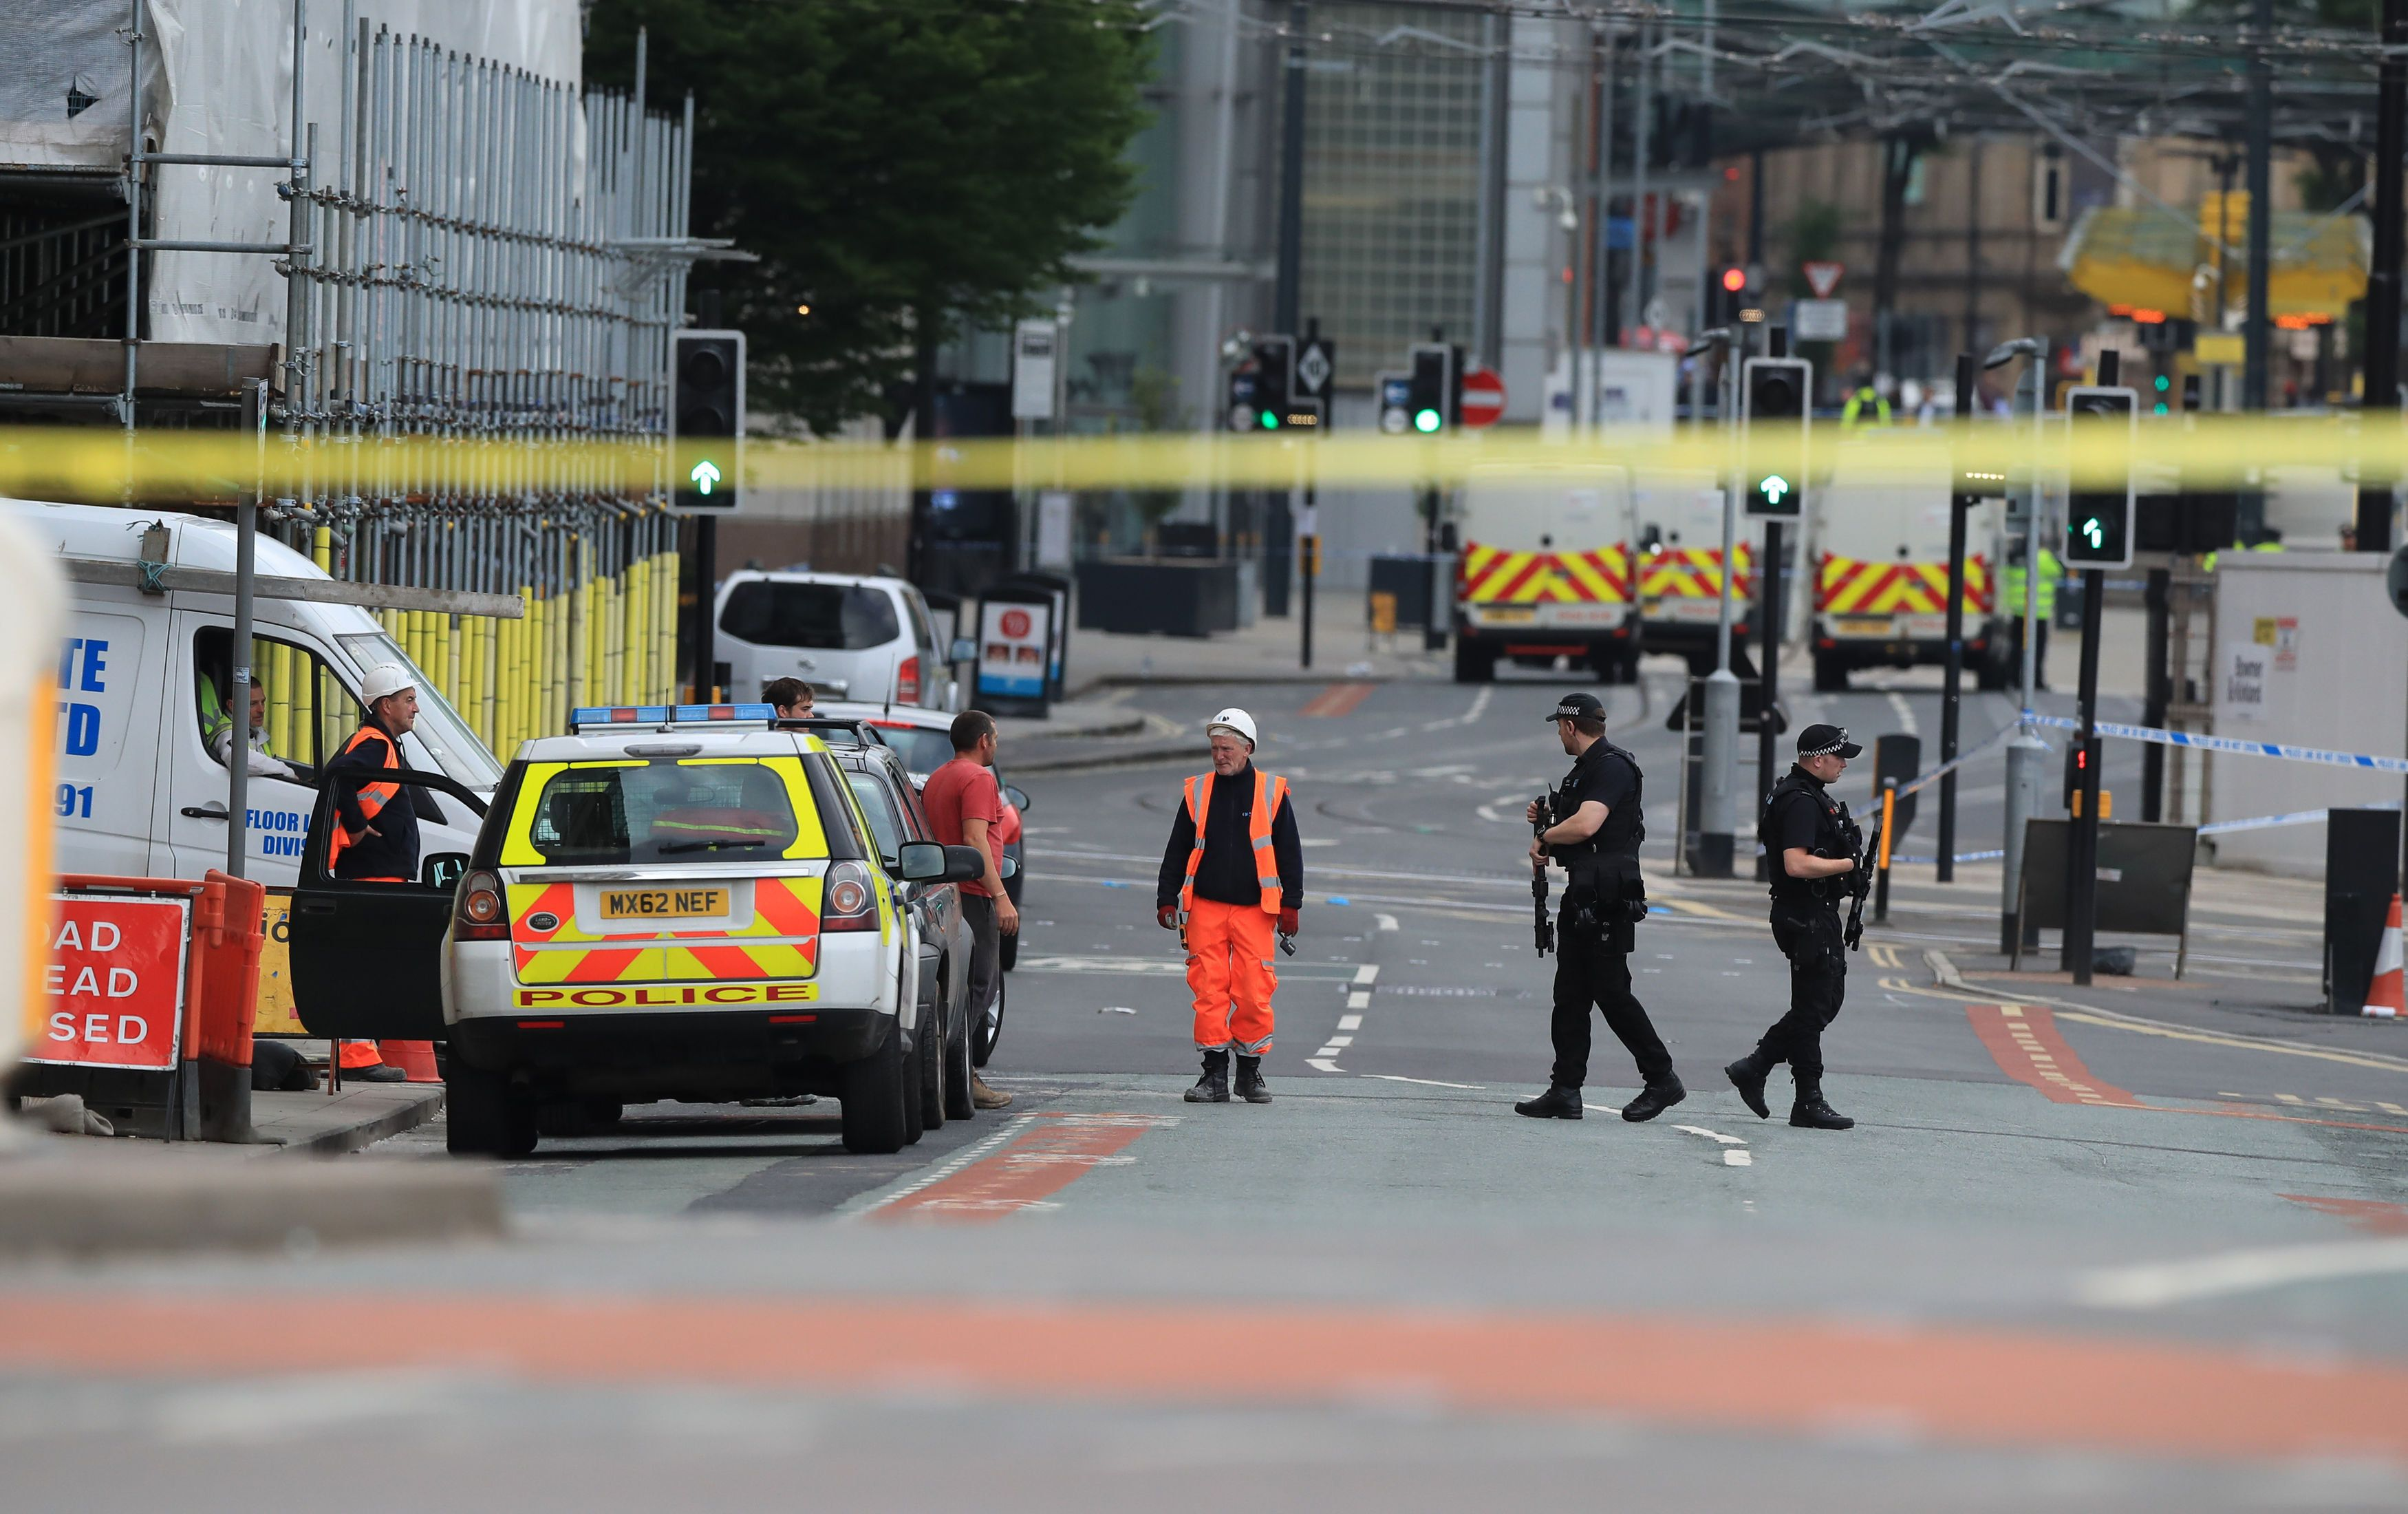 Police remain at the scene on Tuesday morning after a suspected terror attack on the Manchester